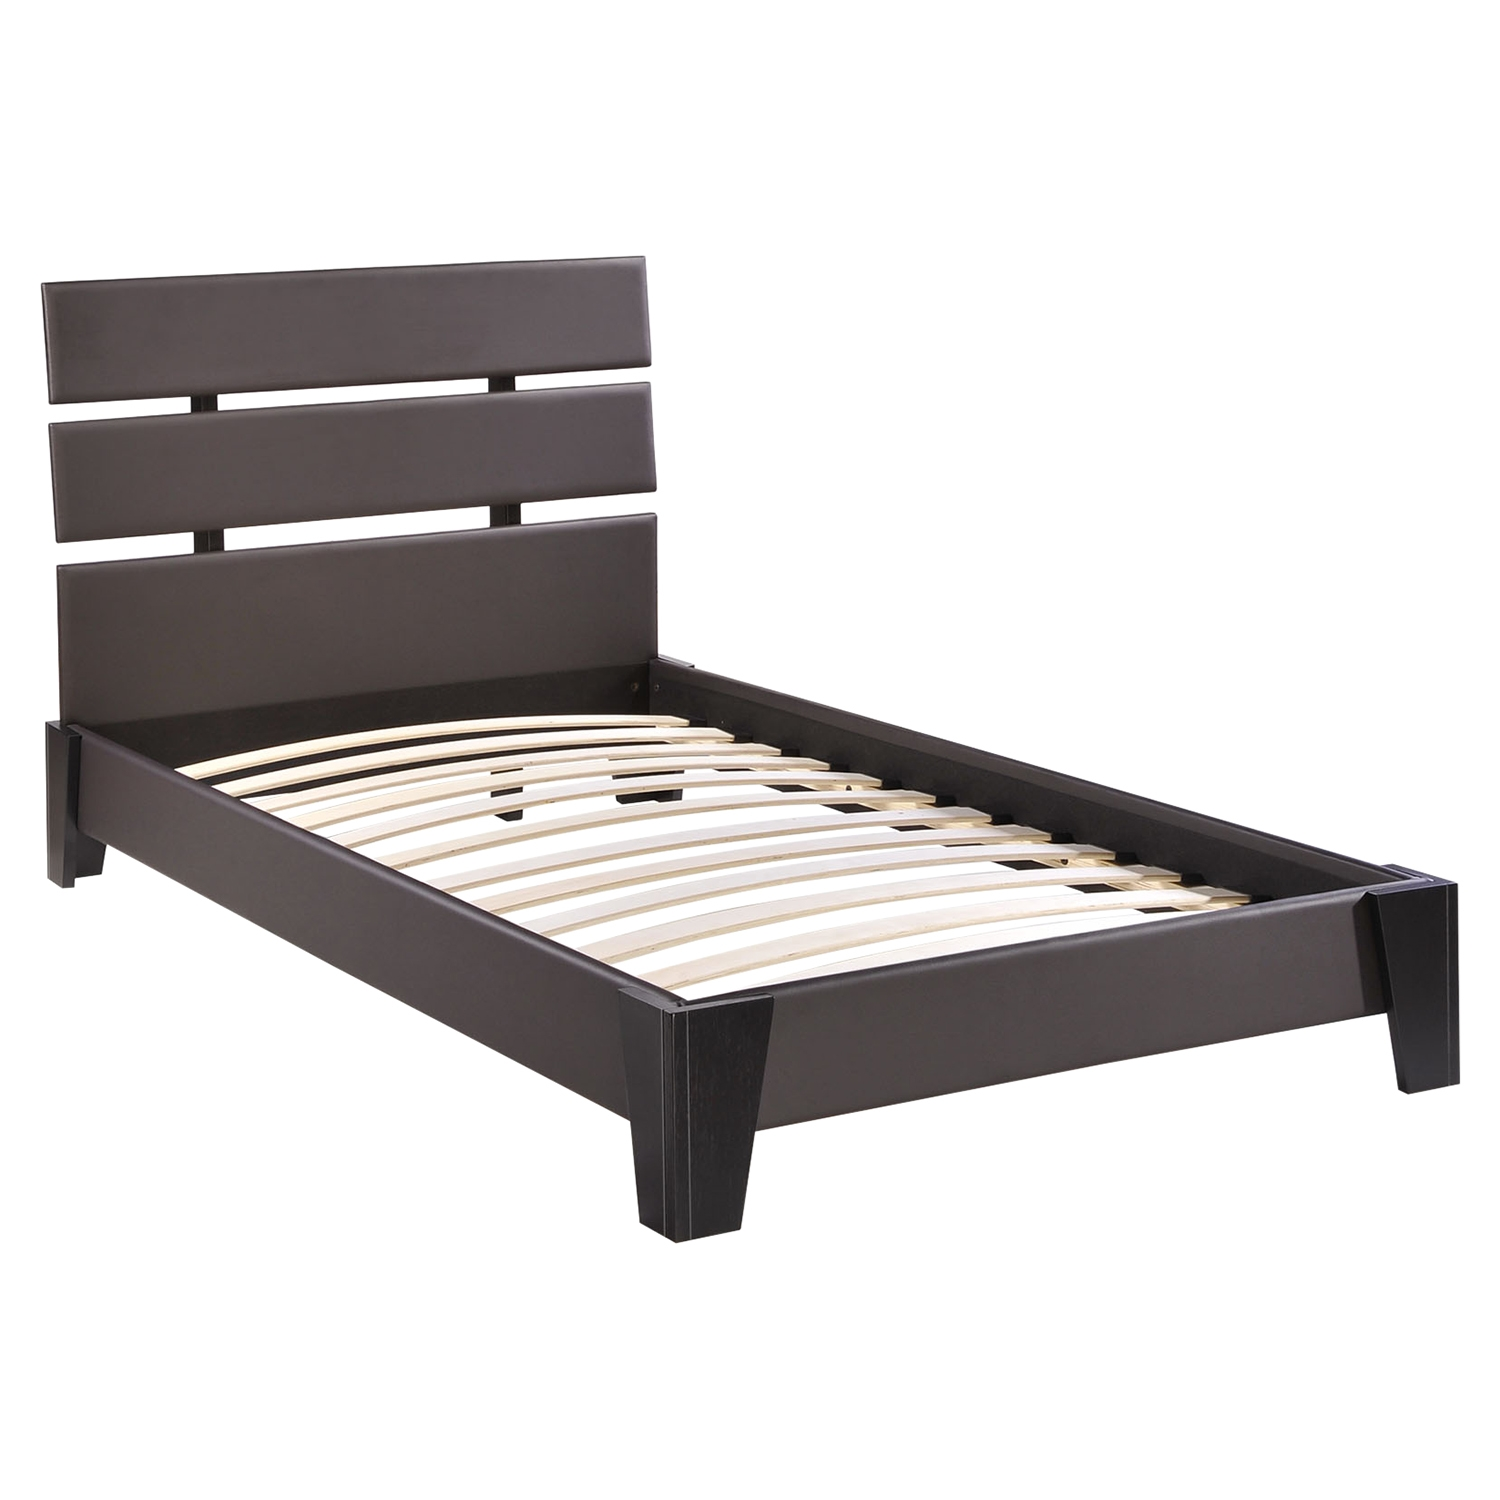 Zoe Twin Leatherette Bed - Platform, Brown - EEI-MOD-5186-BRN